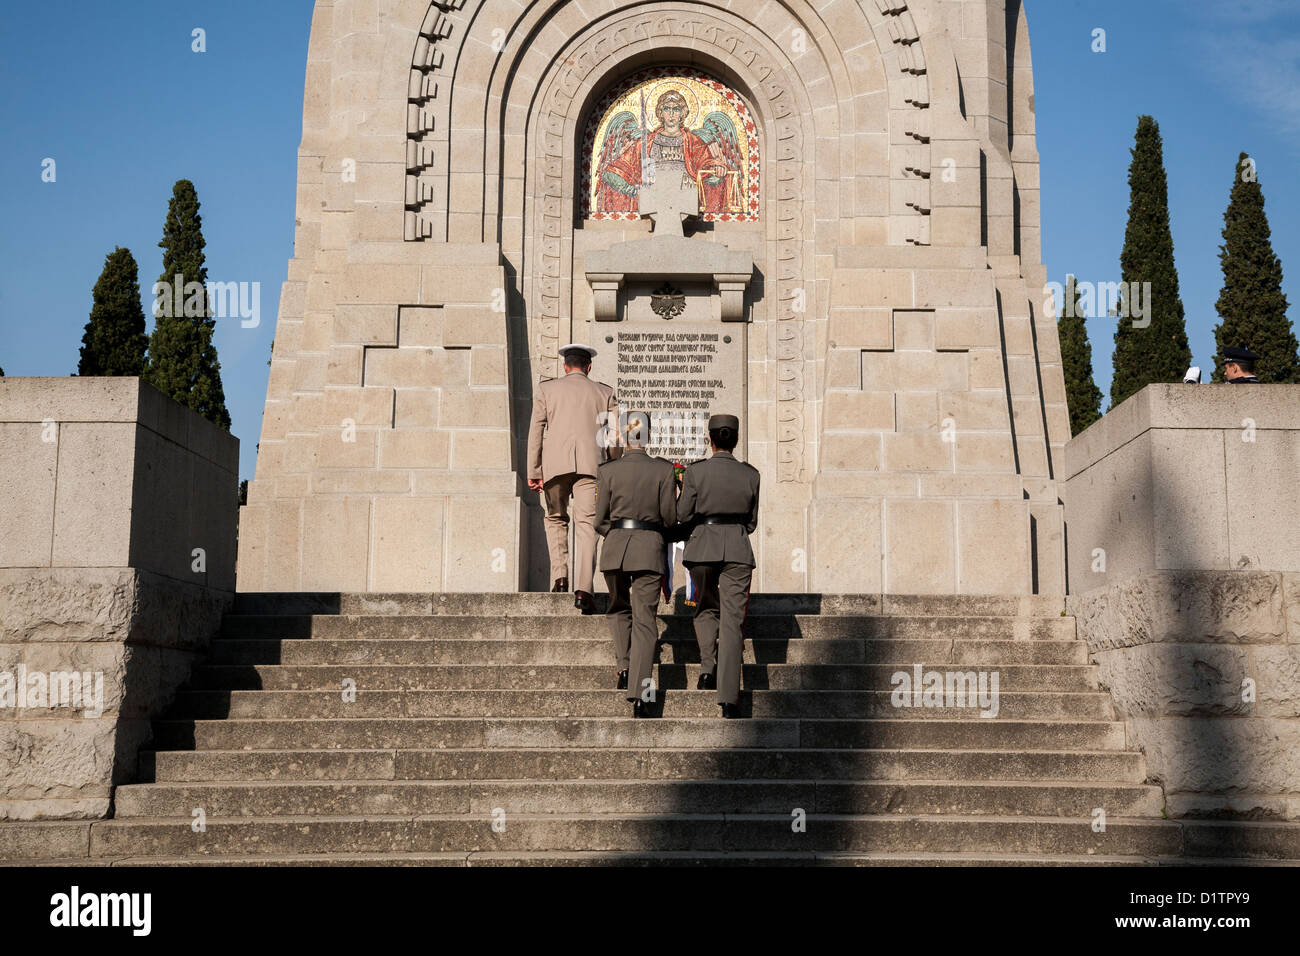 Serbian military officers rehearsing before an honor event, Zeitenlik Allied Military Cemetery in Thessaloniki, - Stock Image